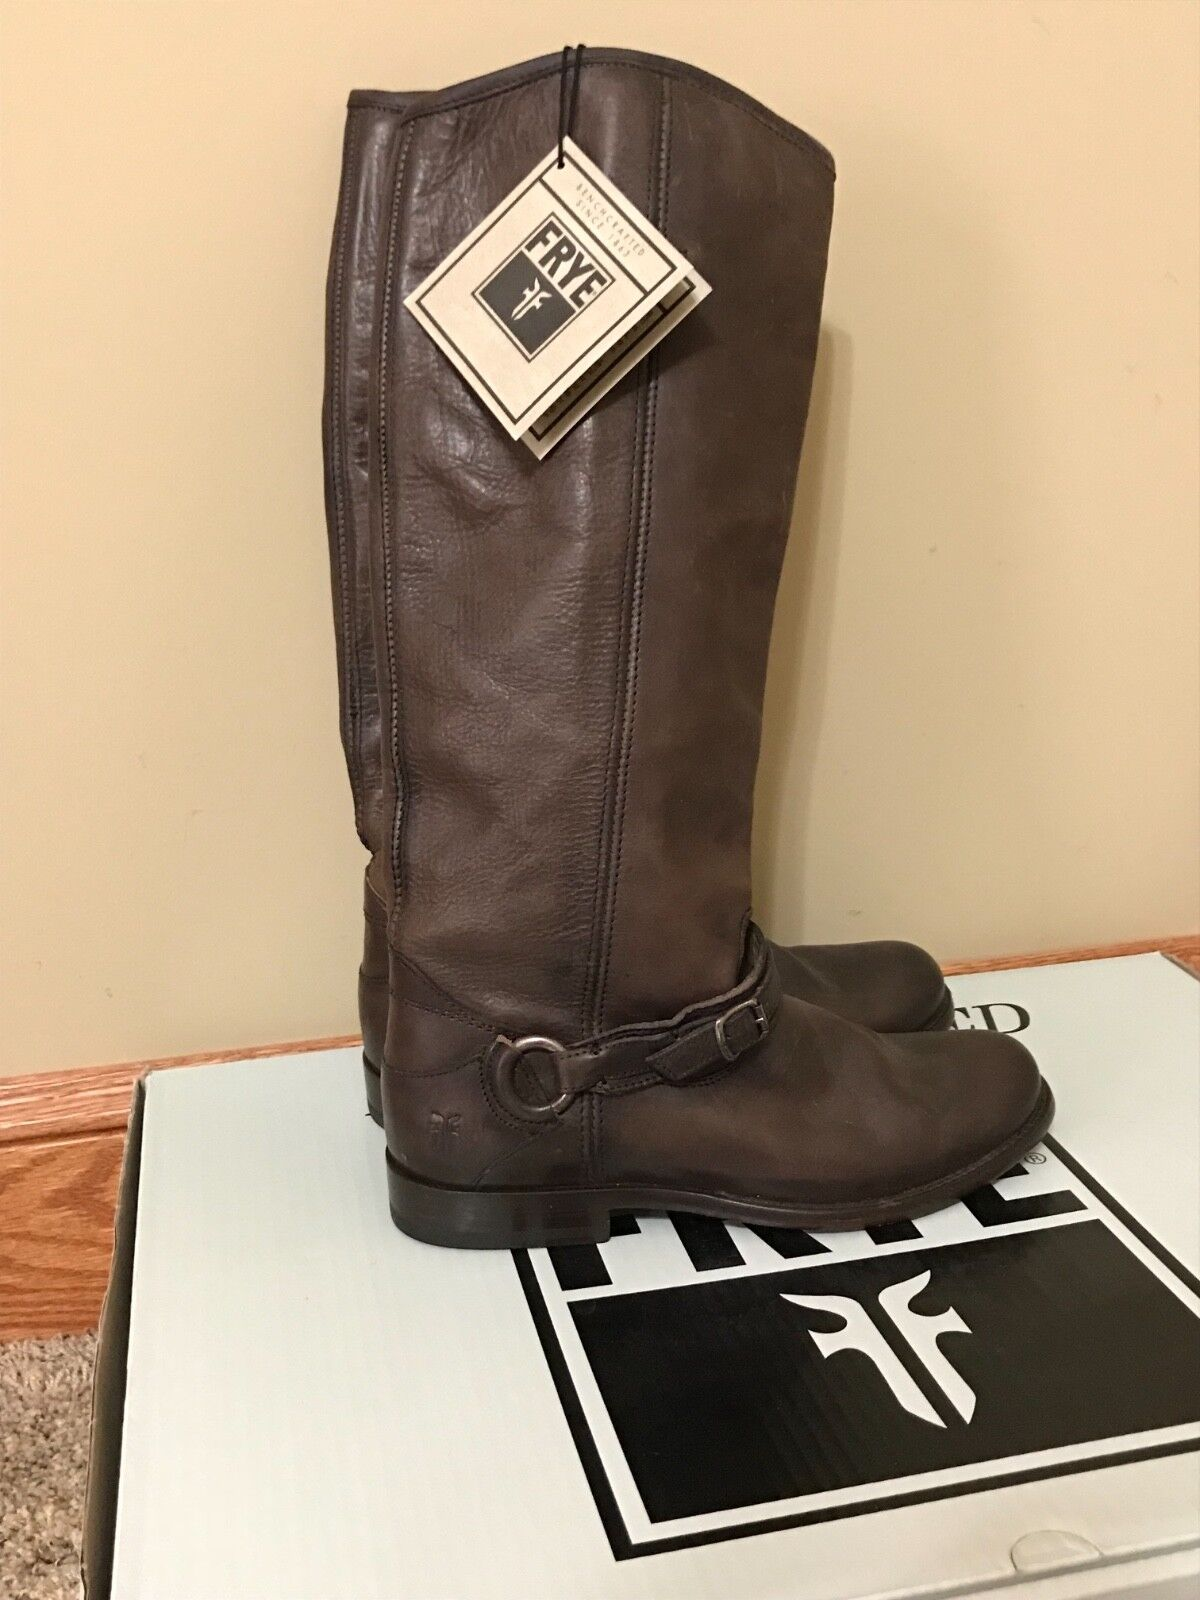 Frye Phillip Ring Tall marron Knee High Pull On Riding démarrage Sz 8